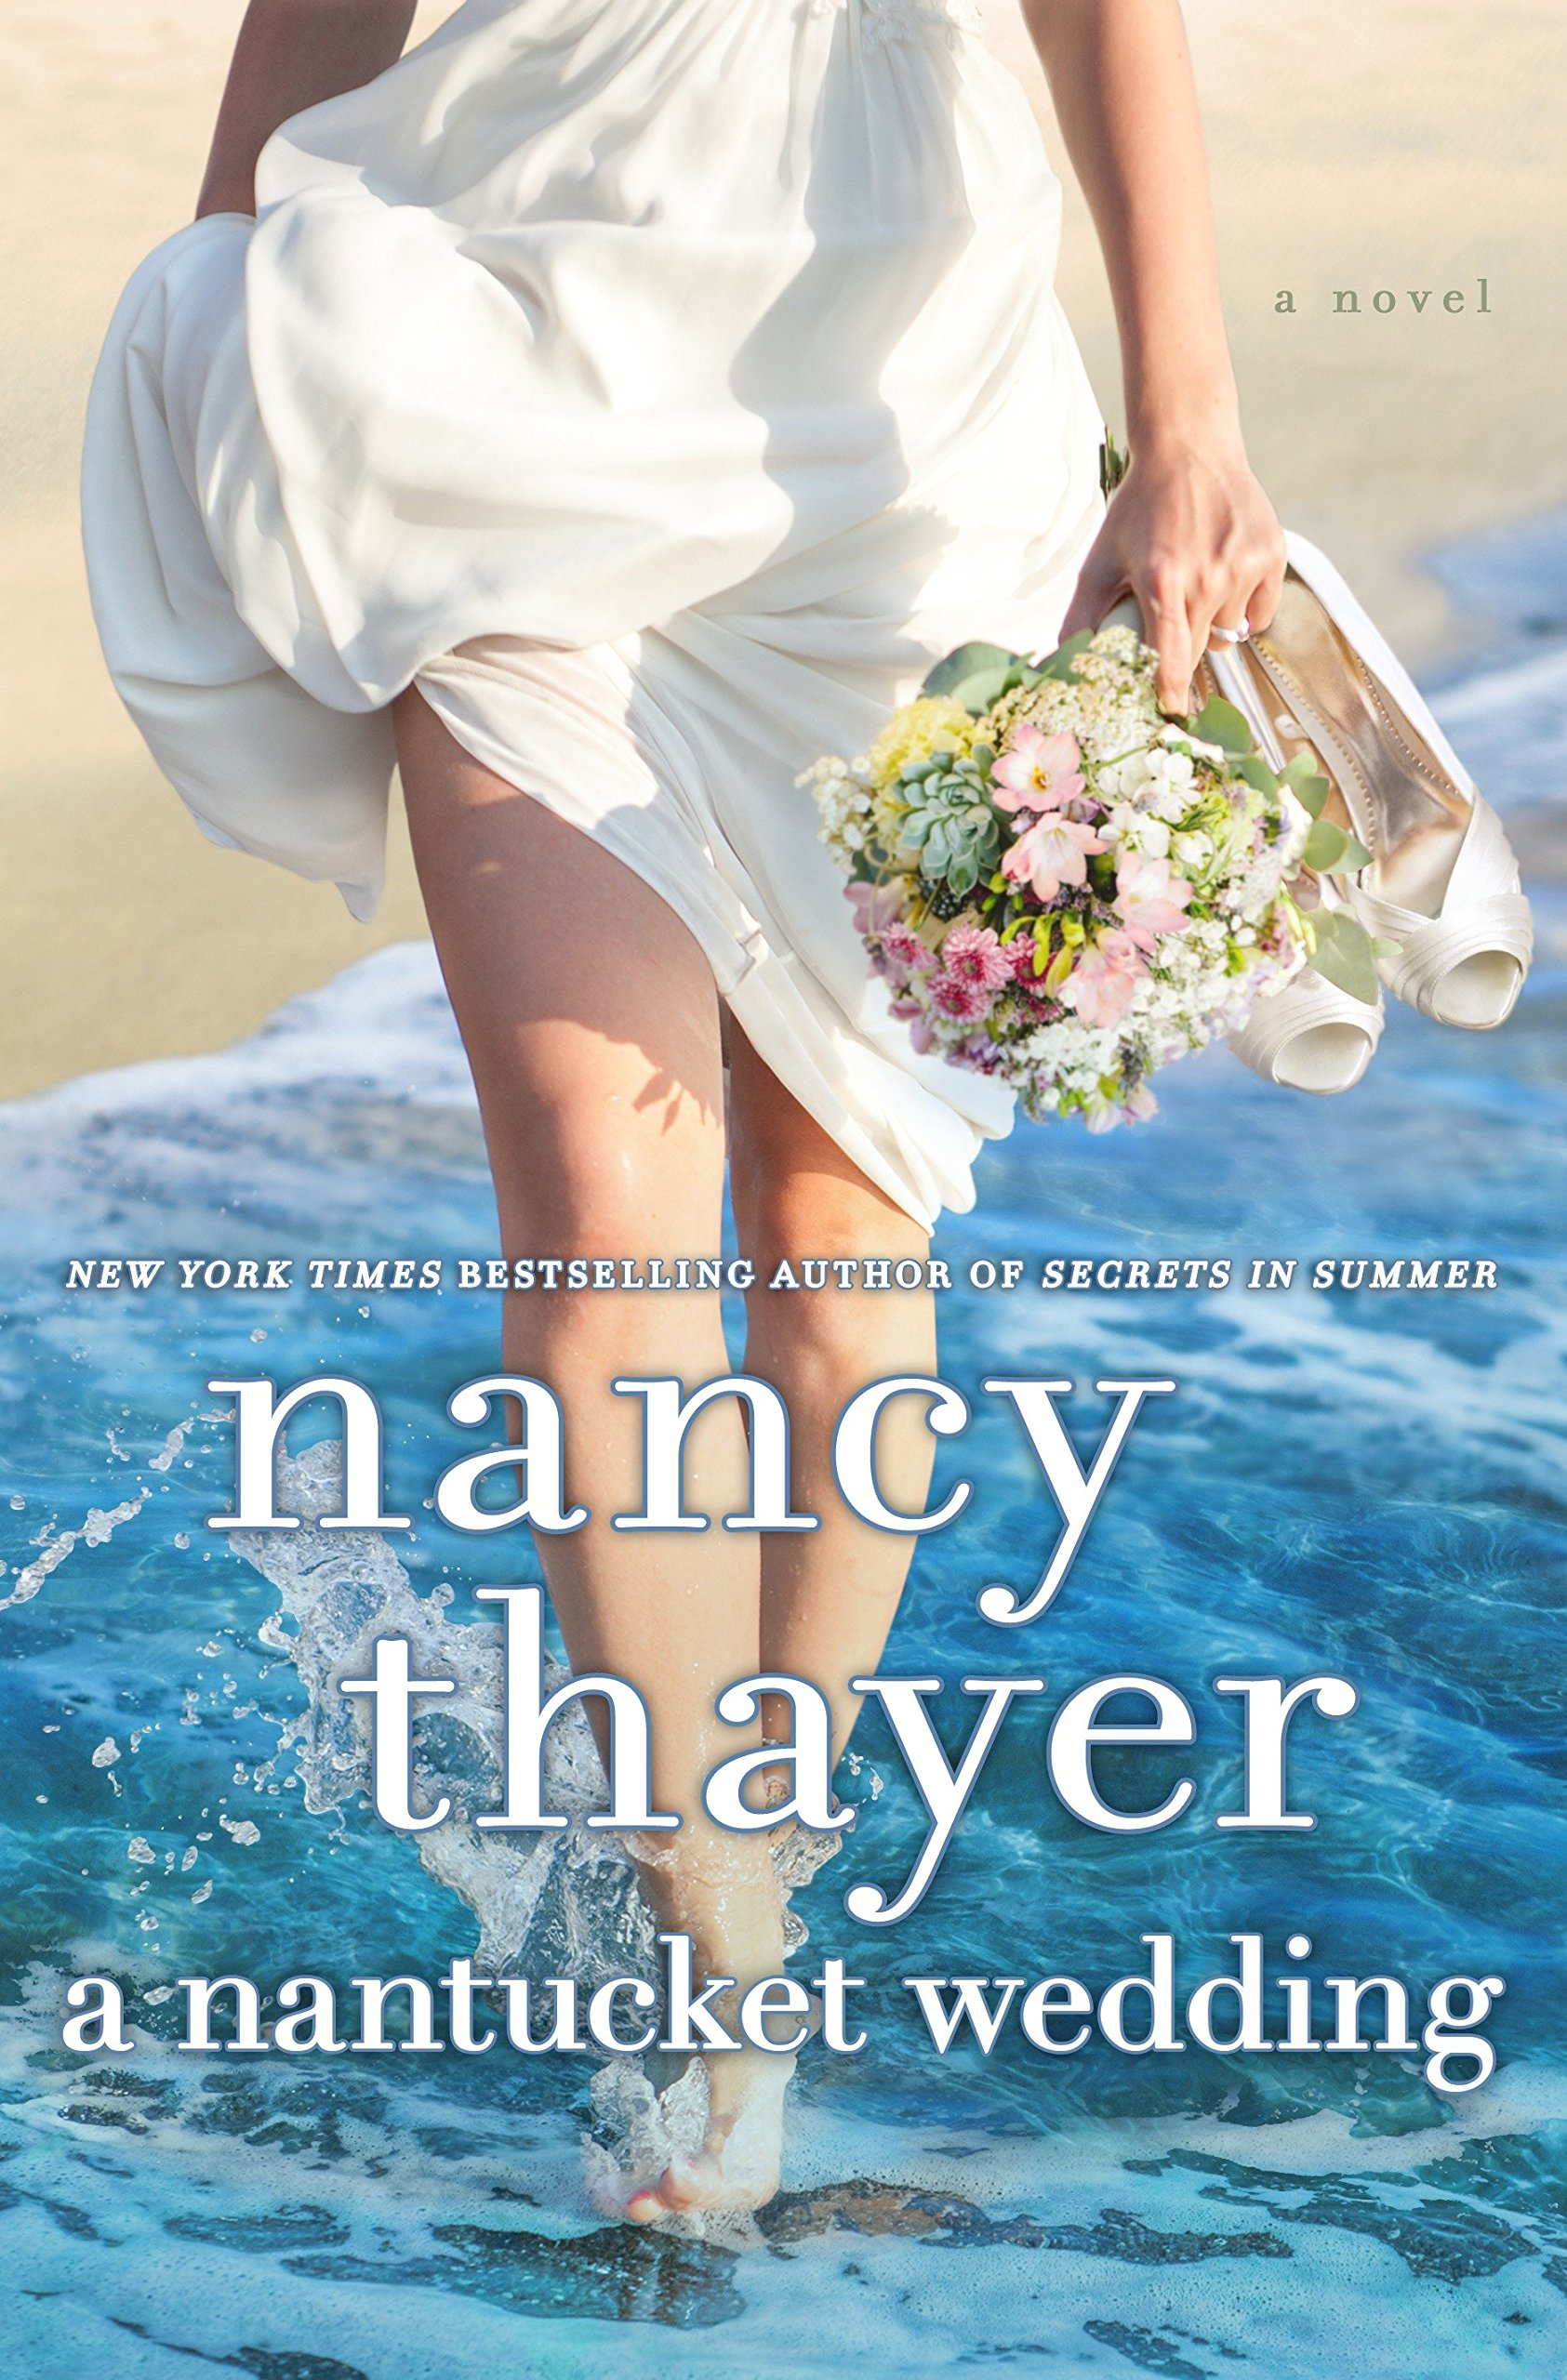 Download A Nantucket Wedding: A Novel ebook